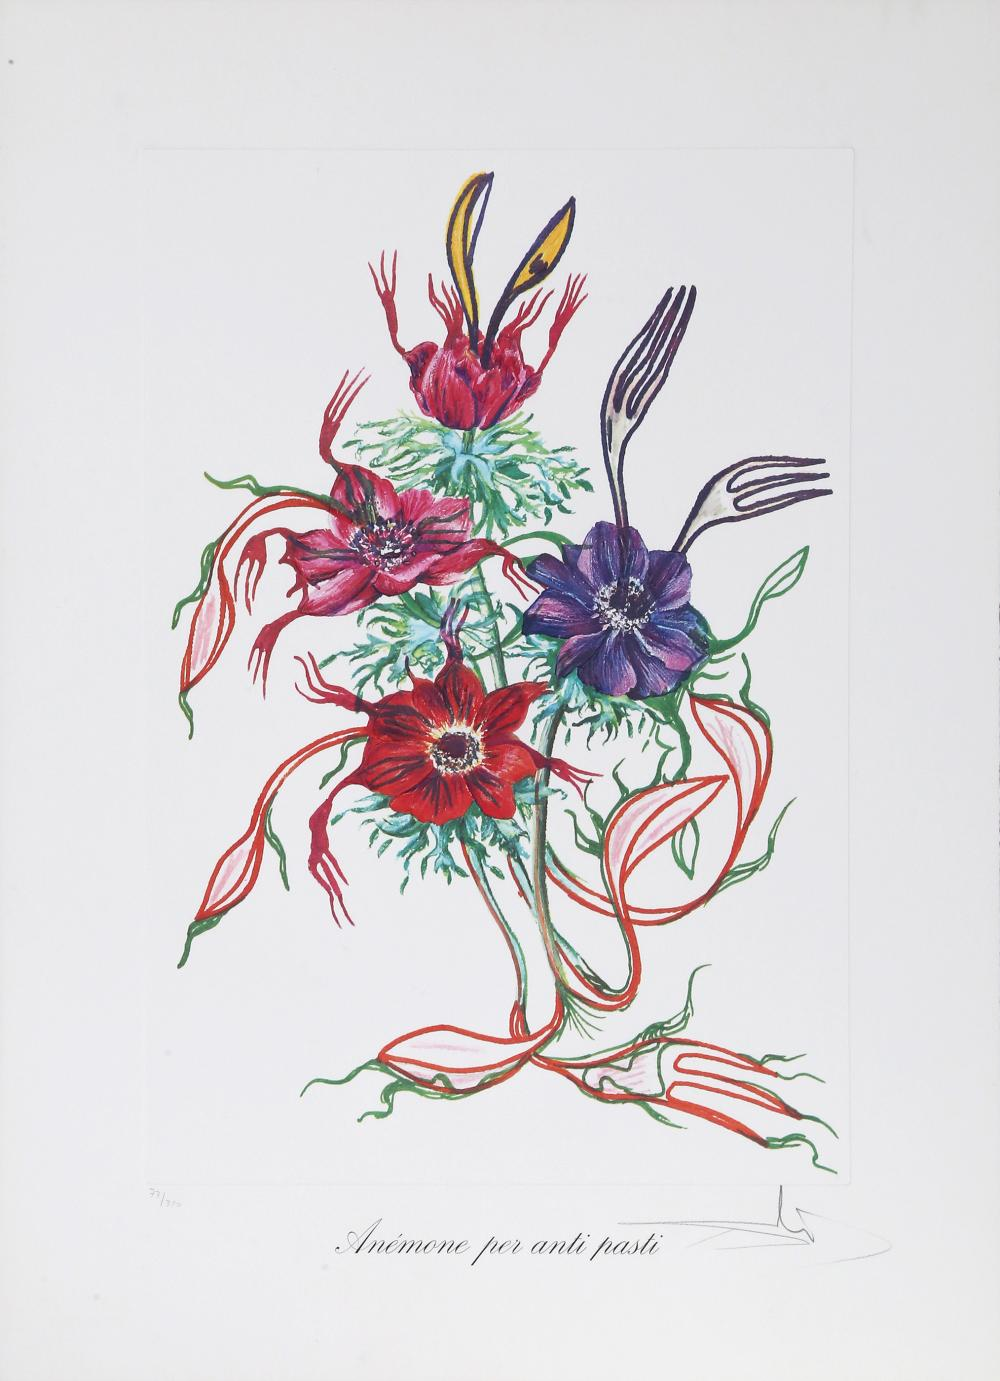 Salvador Dali, Anemone per Anti-Pasti (Anemone of the Toreador) from Florals, Lithograph with embossing on heavy Arches paper